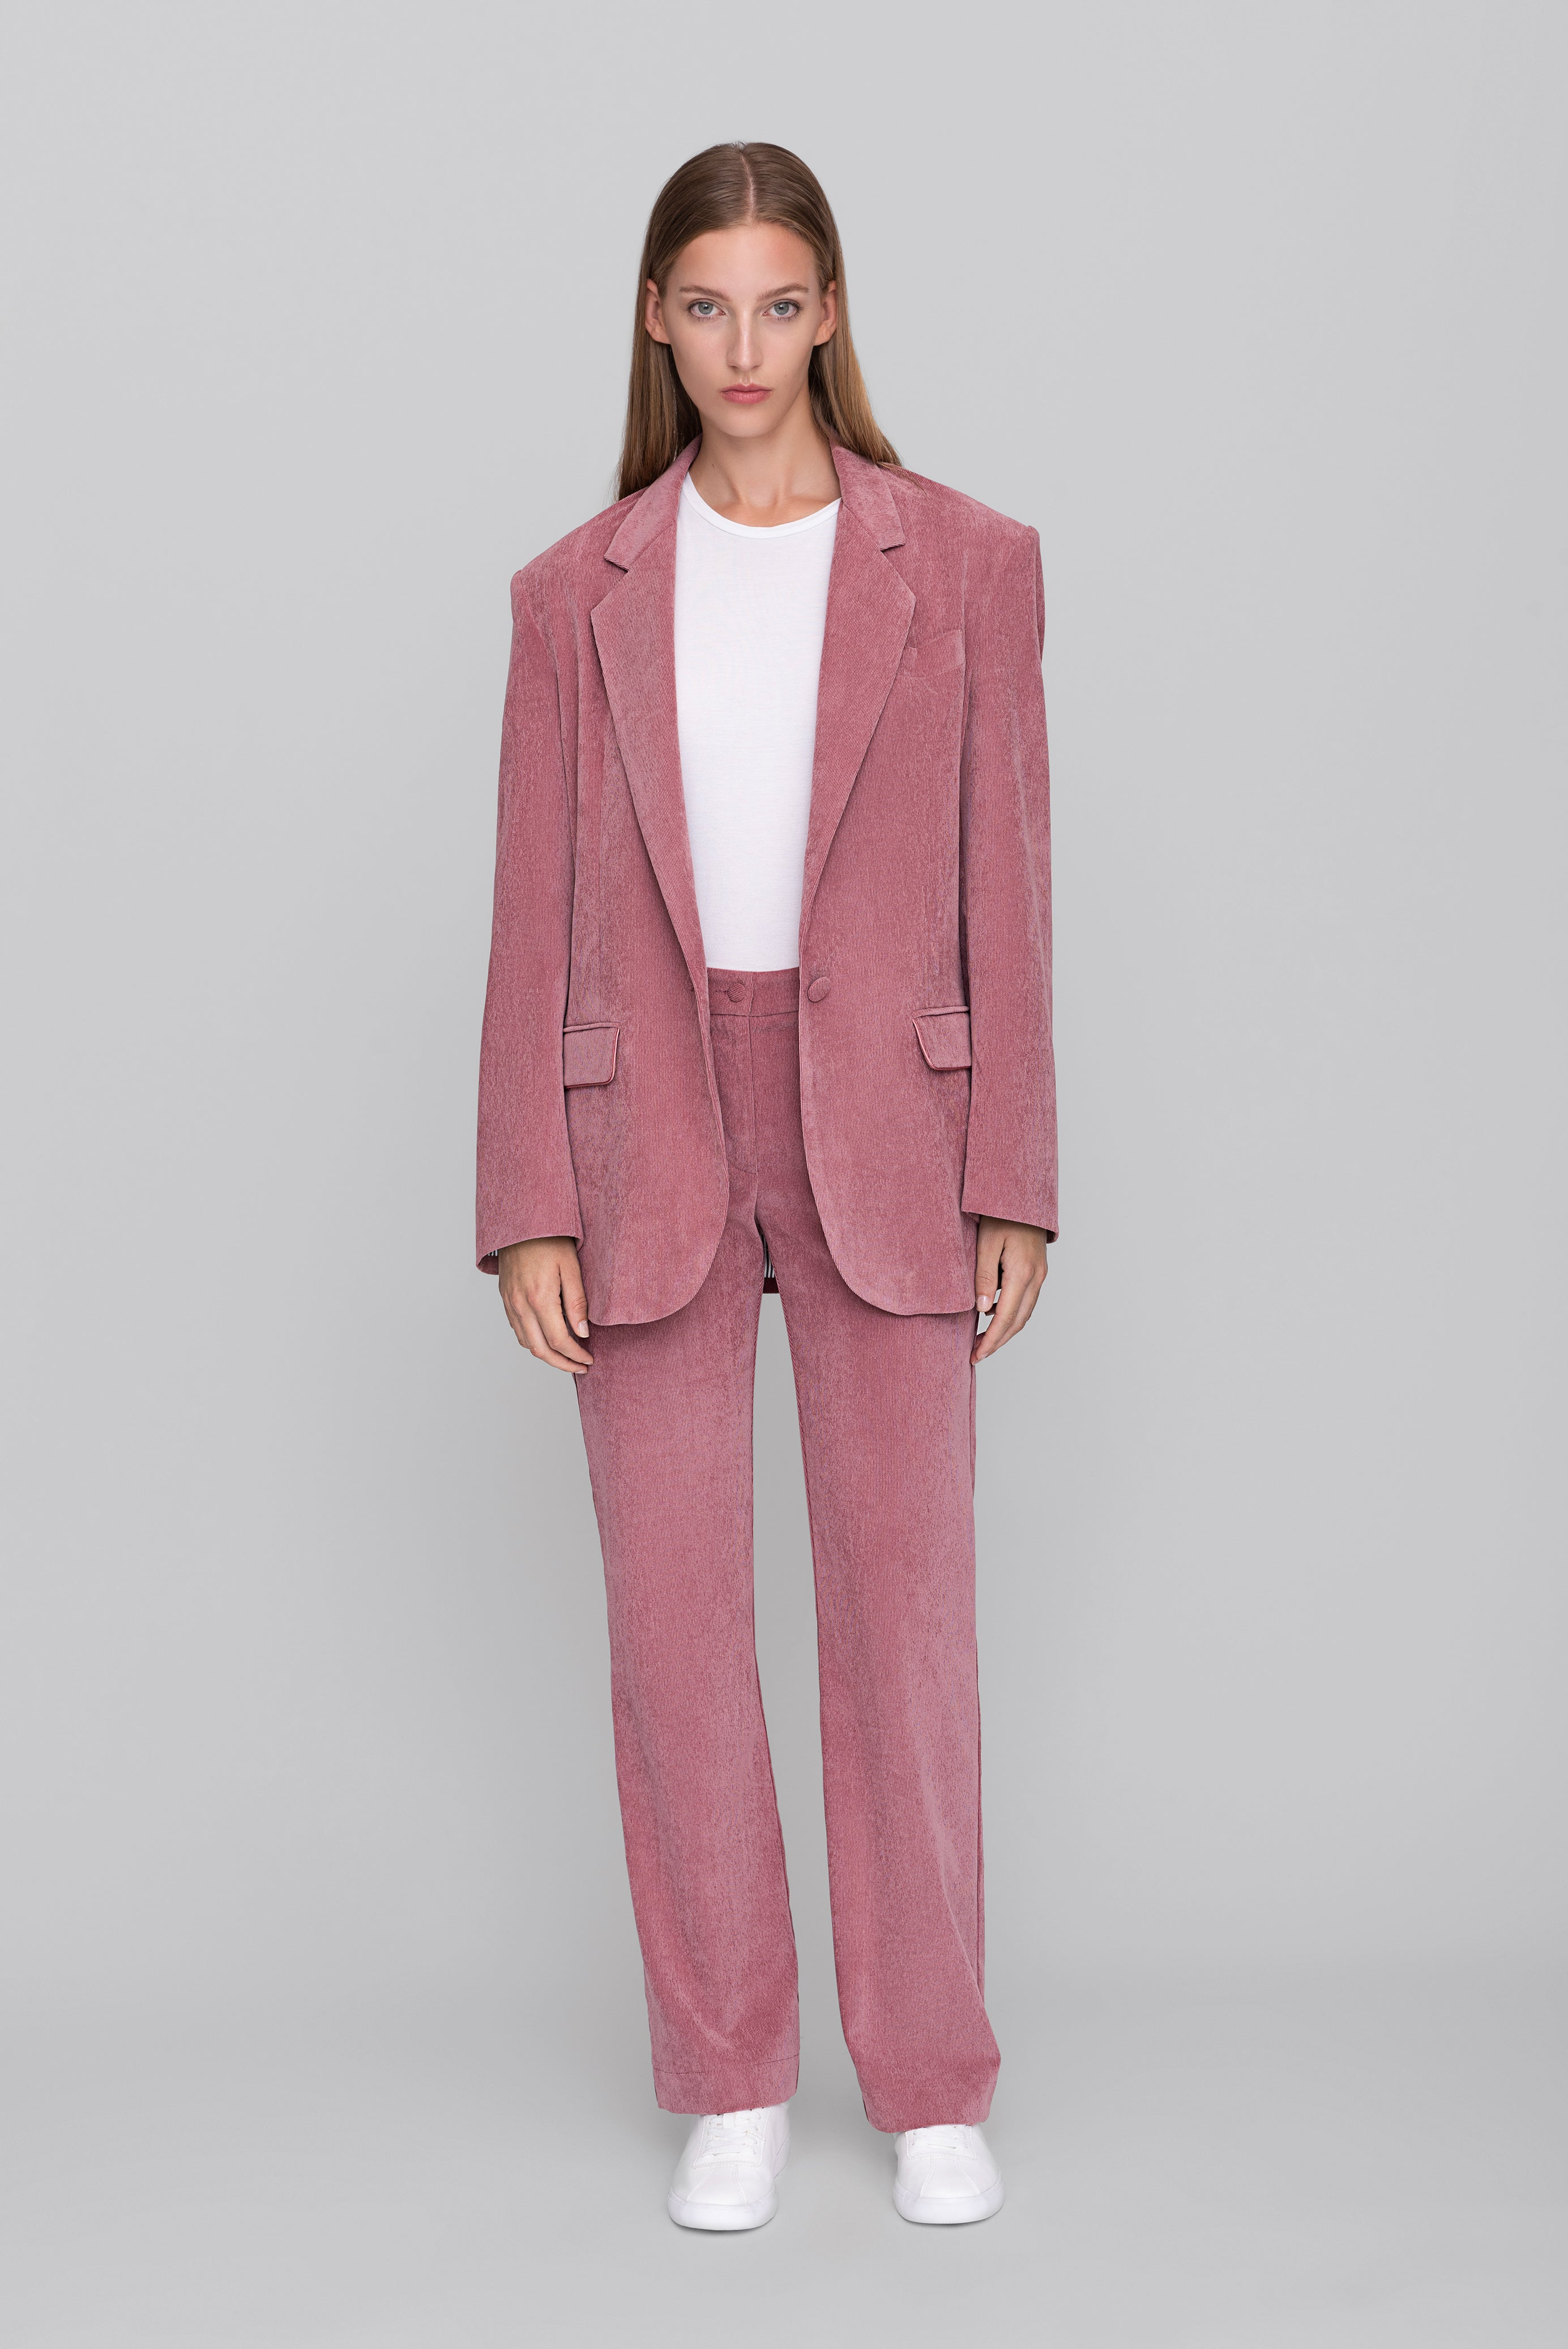 The Pink Corduroy Lover Blazer